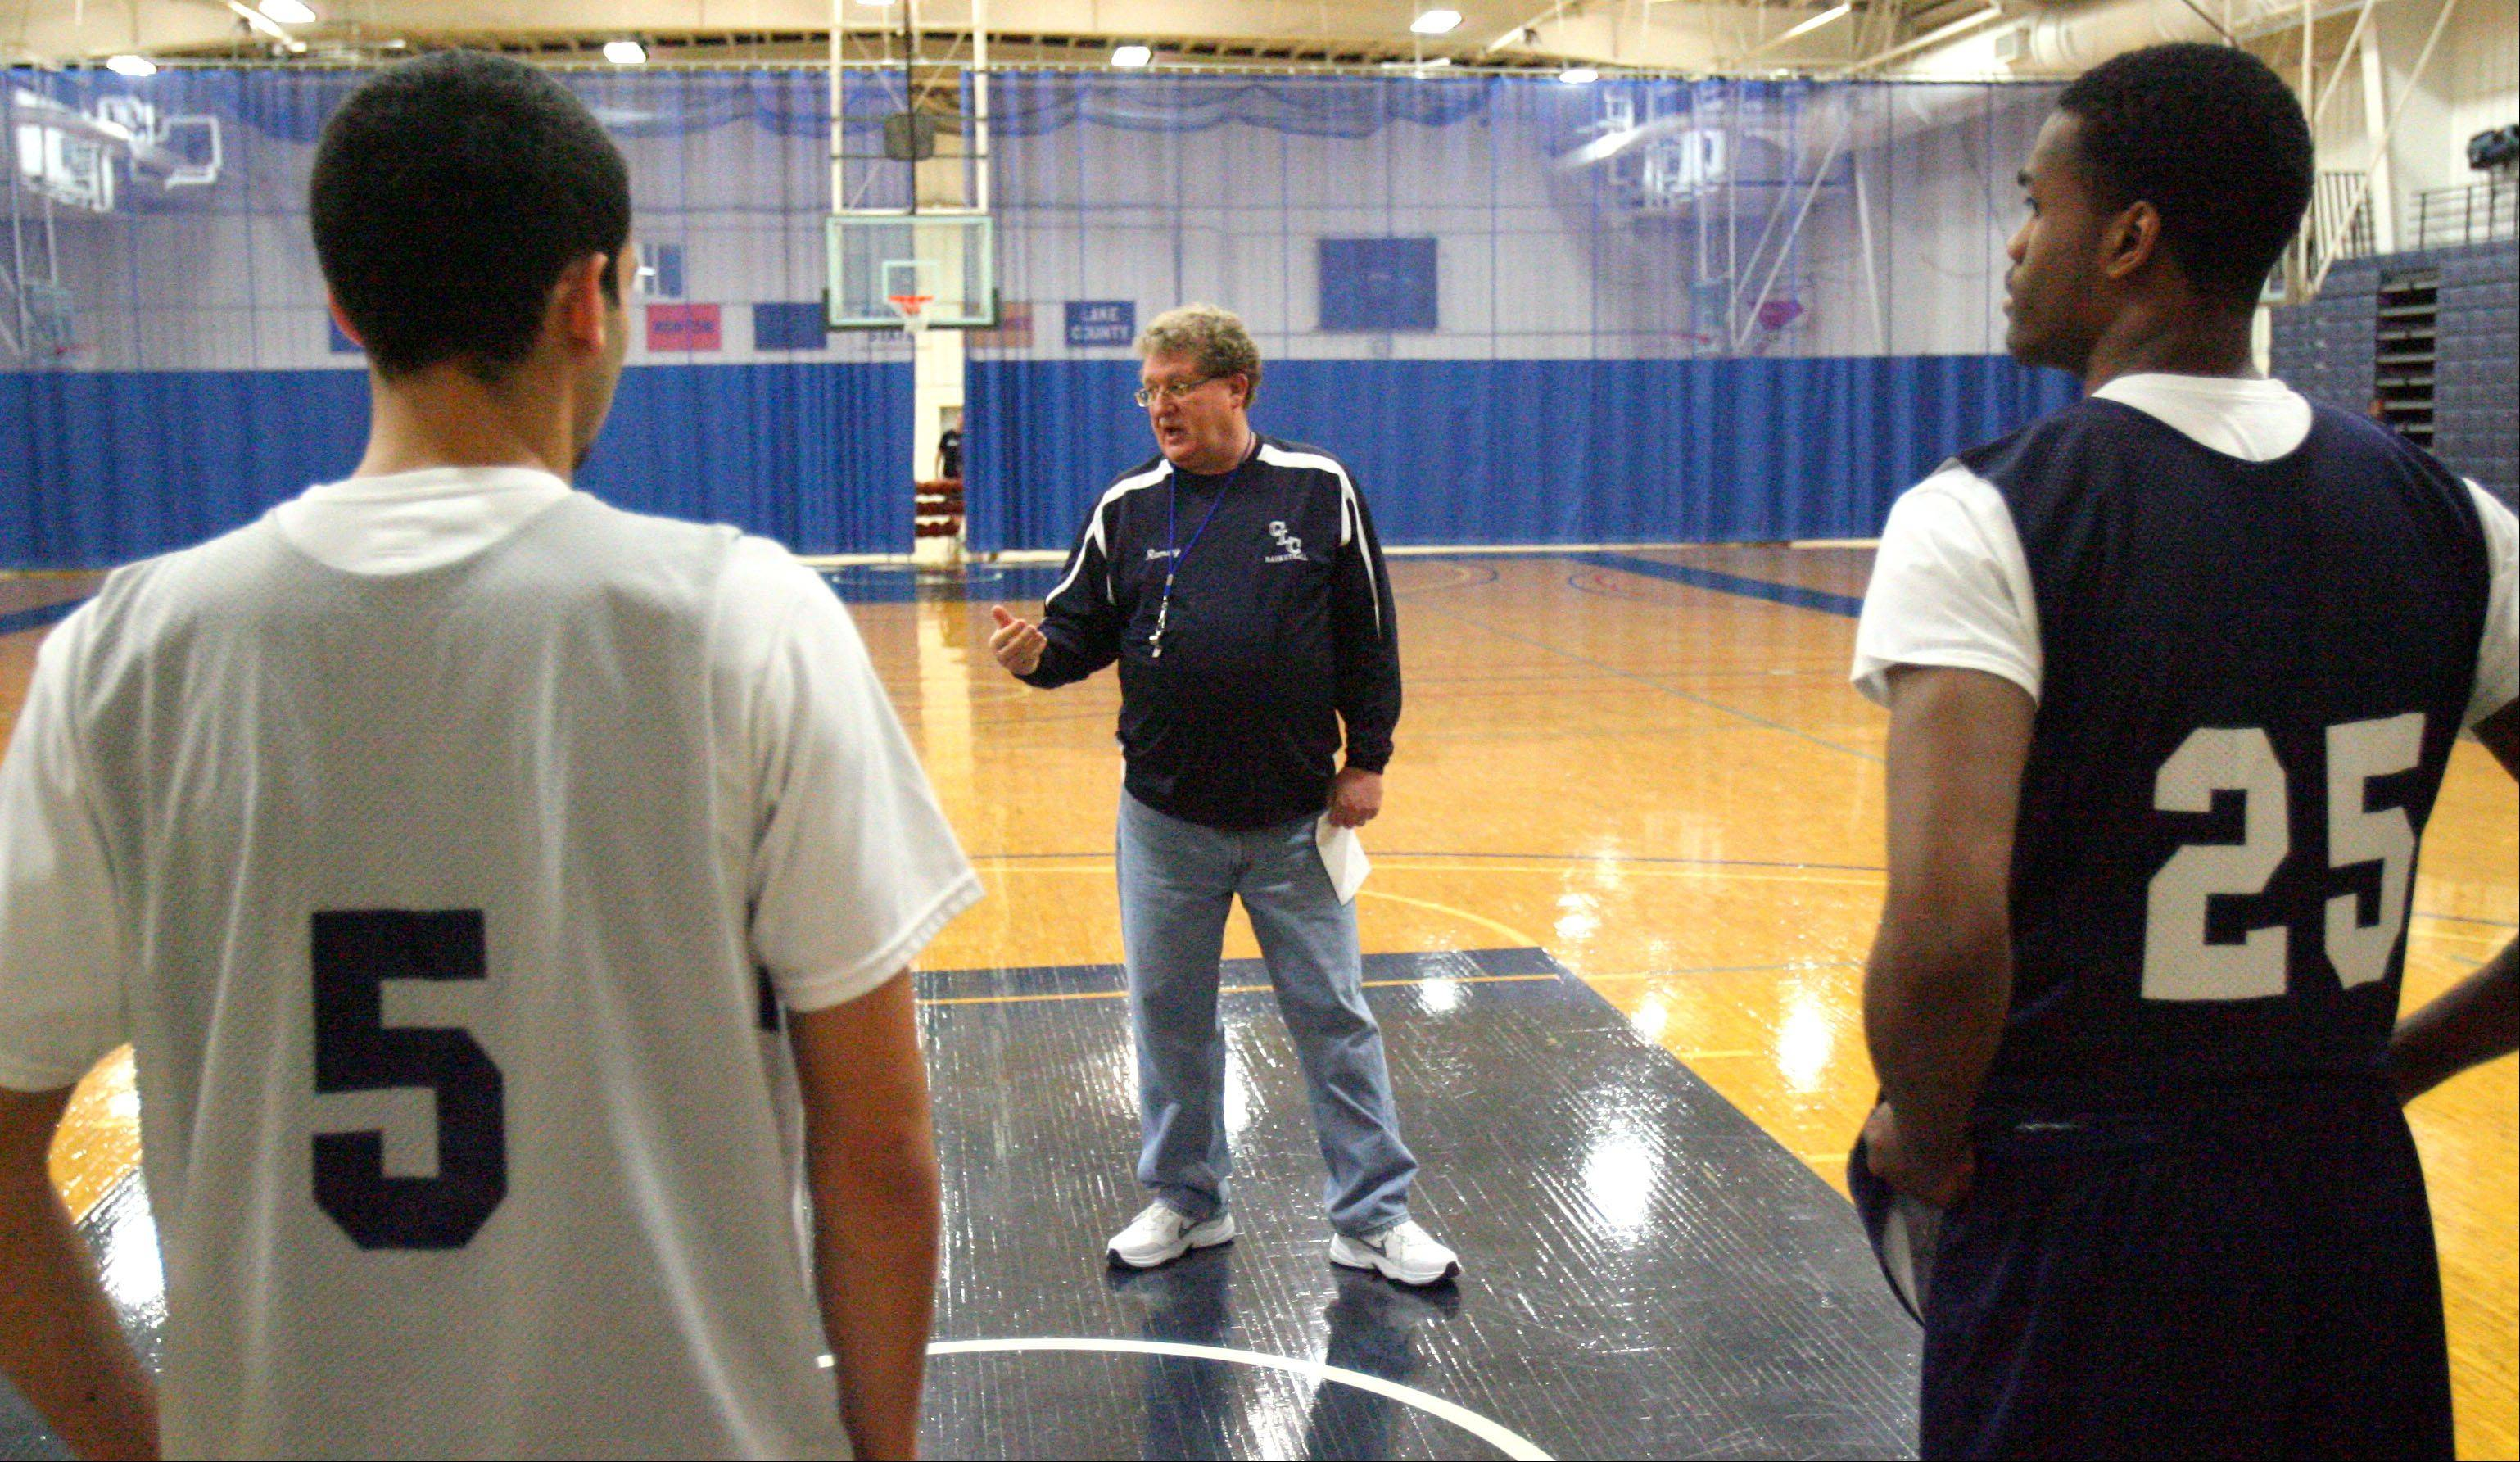 Former Warren coach Chuck Ramsey runs practice Wednesday at College of Lake County, where he's now leading the men's program.